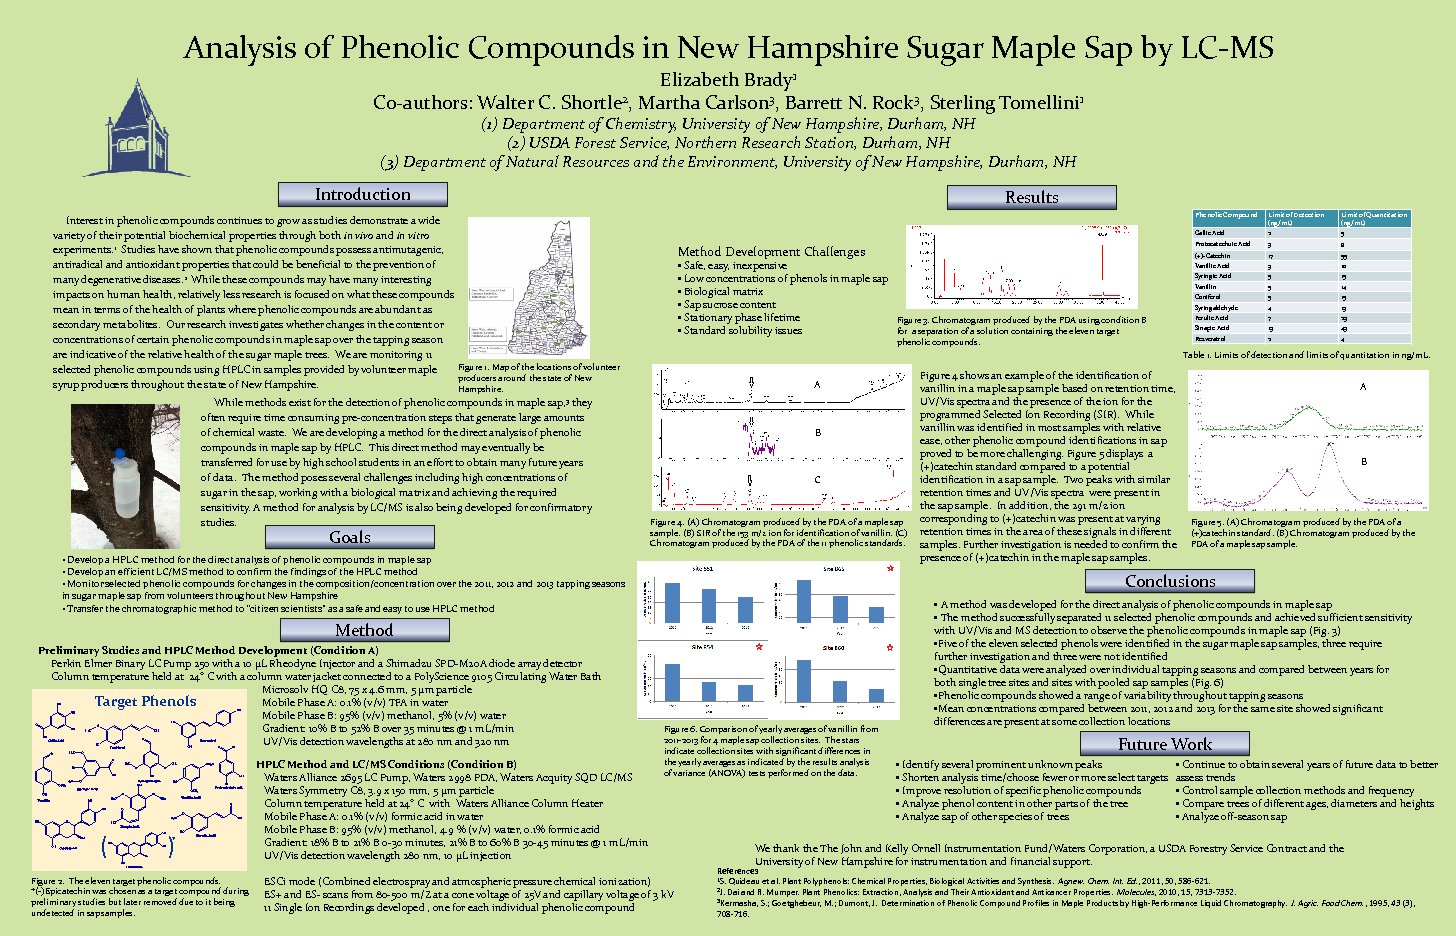 Analysis Of Phenolic Compounds In New Hampshire Sugar Maple Sap By Lc-Ms by ebrady30